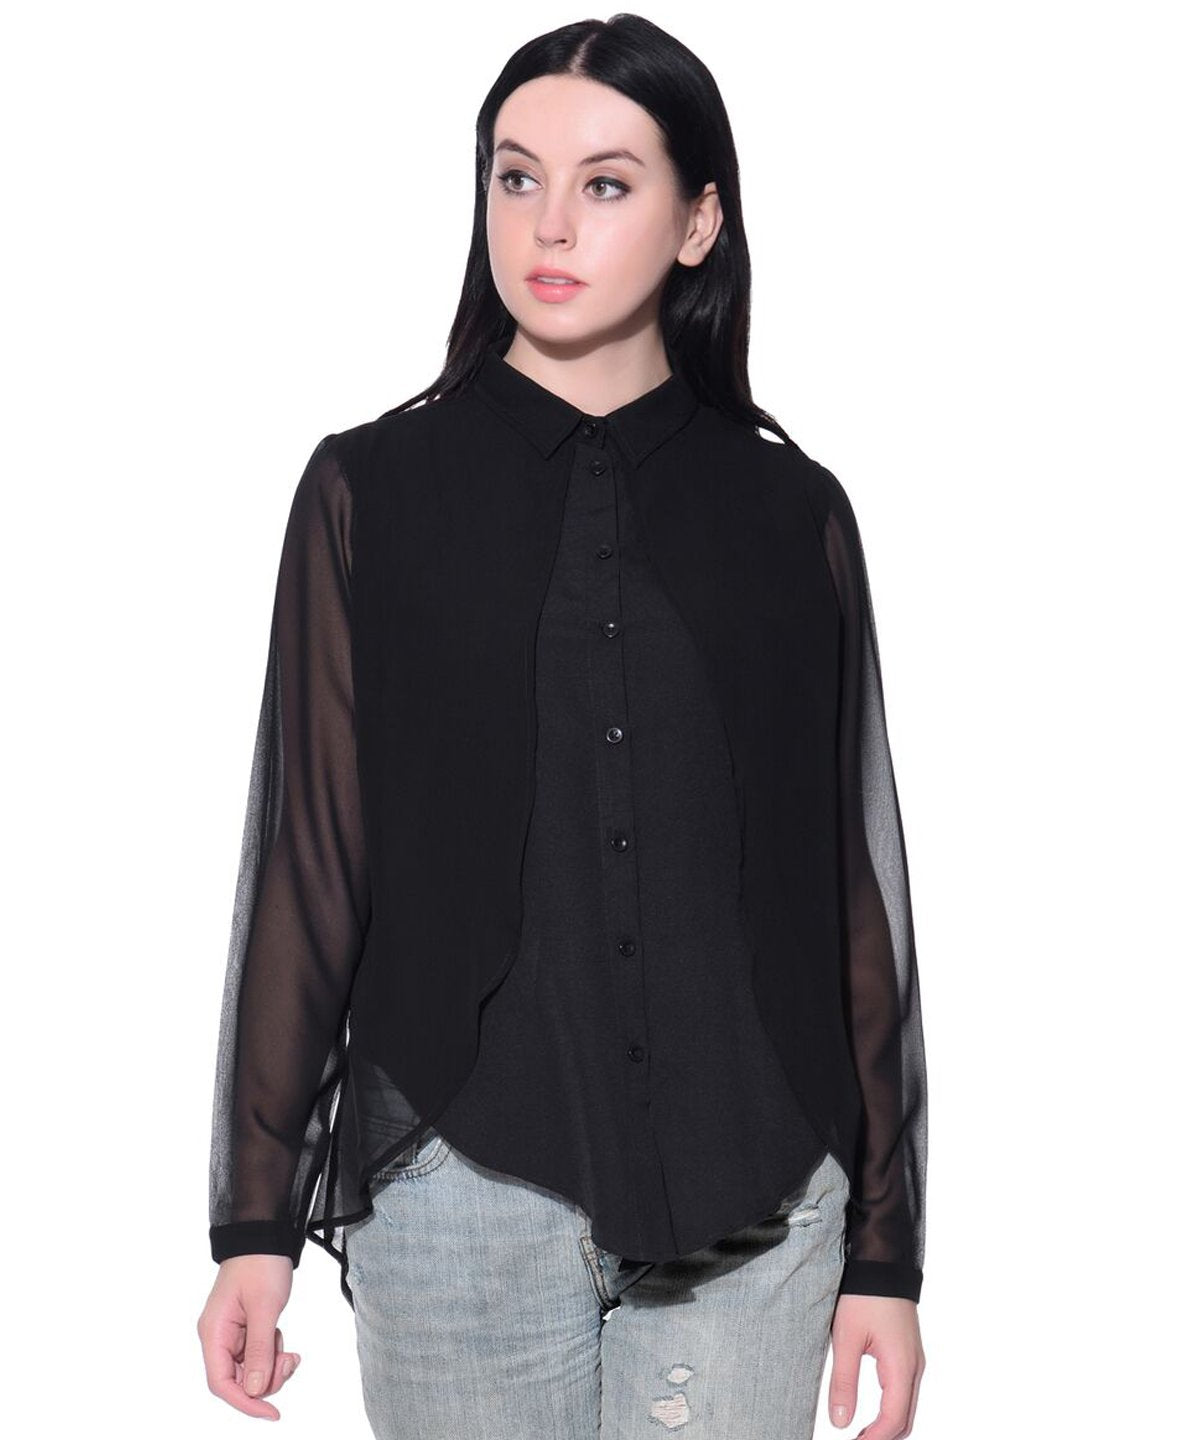 Uptownie Plus Solid Black Ruffle Georgette Overlay Shirt 1 clearance sale